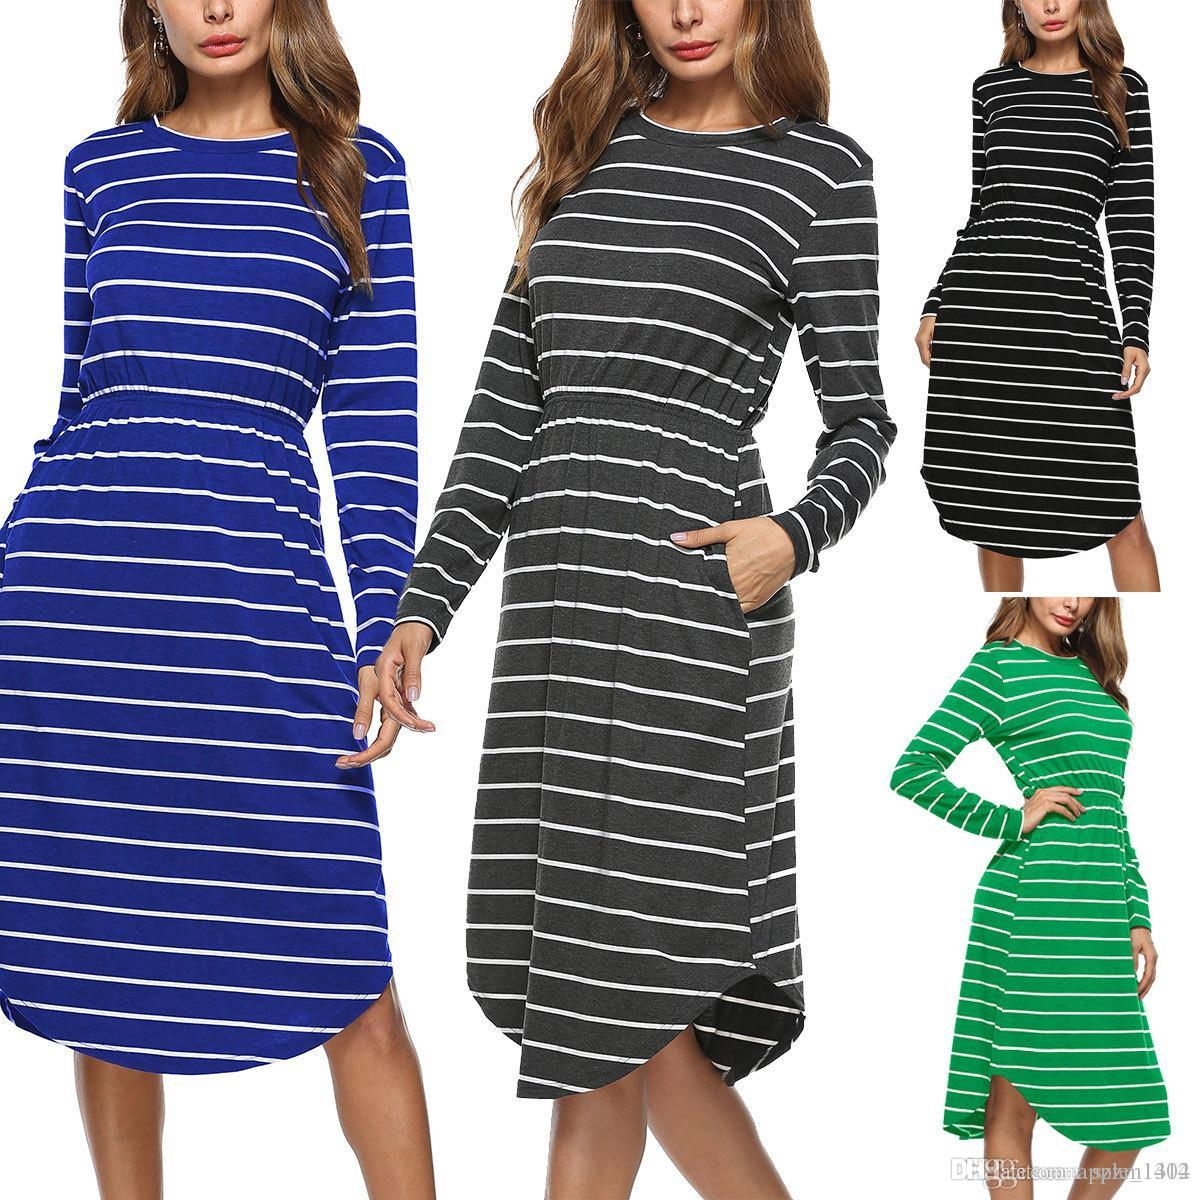 dacad20b20c Fashion Women Long Sleeve Striped Dress Girls Midi Empire Causal Dresses  Loose Cotton Long Skirts Plus Size for Vintage Women s Clothin